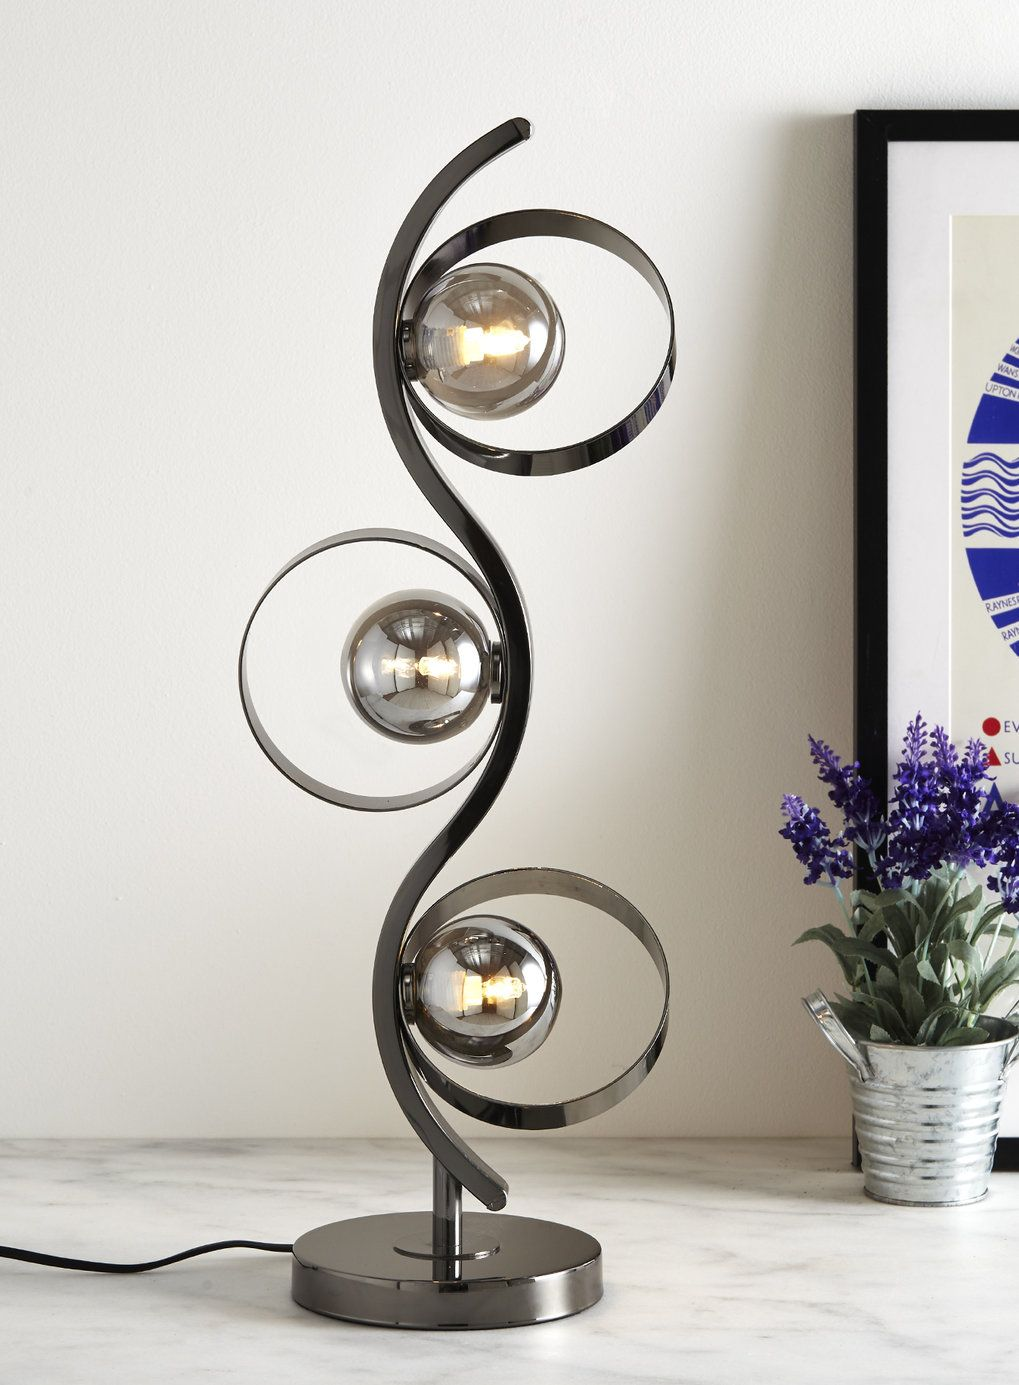 Tyler table lamp lamps pinterest bhs and interiors tyler table lamp mozeypictures Image collections